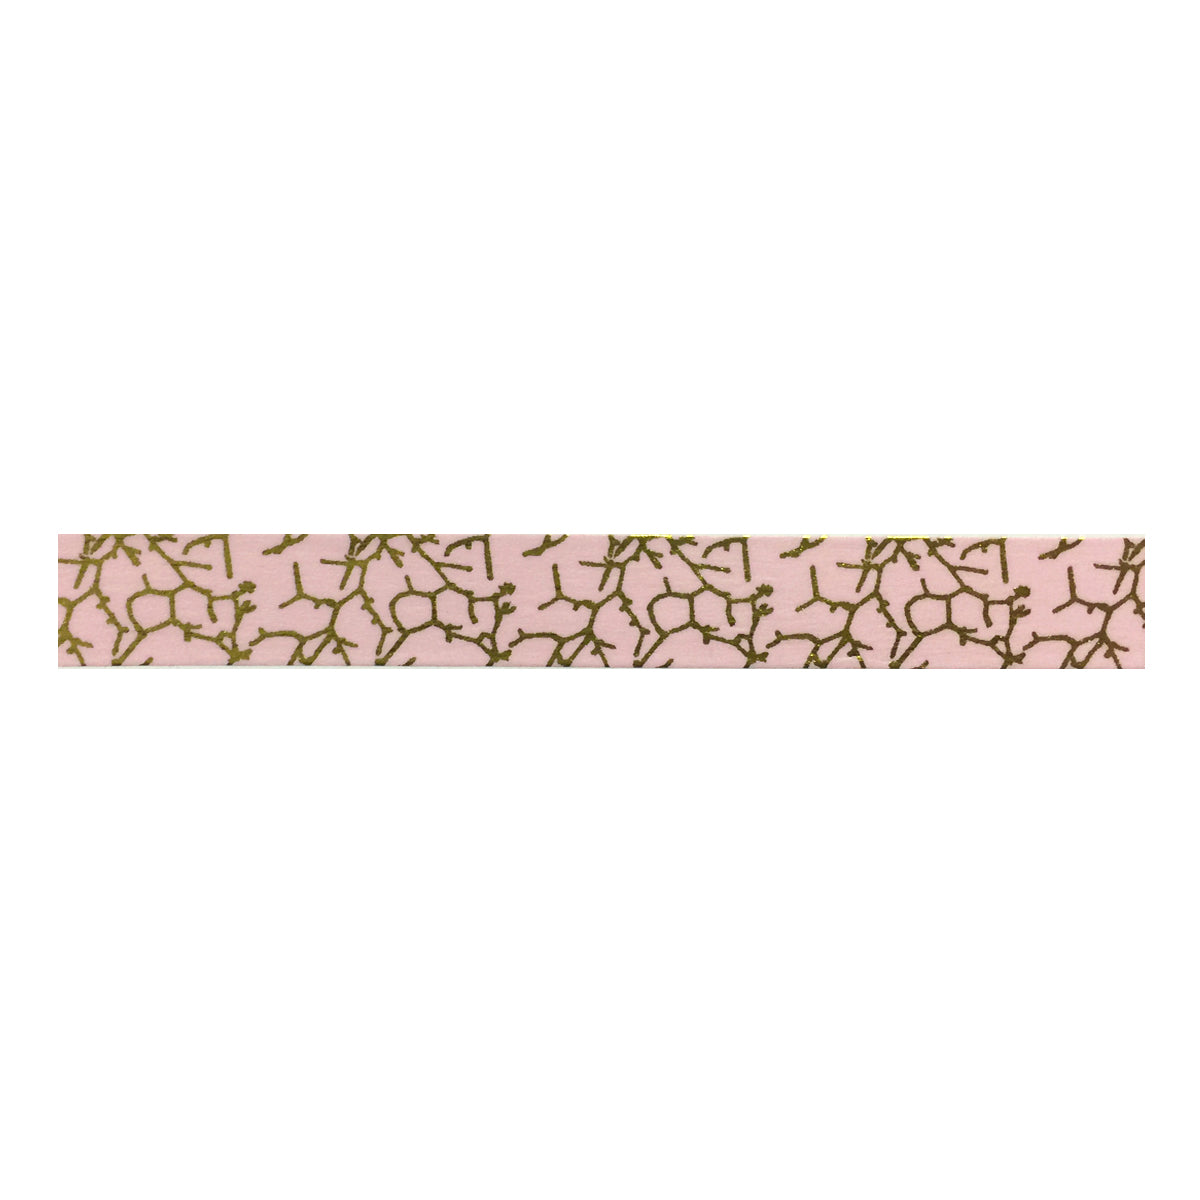 Wrapables Washi Masking Tape, Pastel and Gold Group